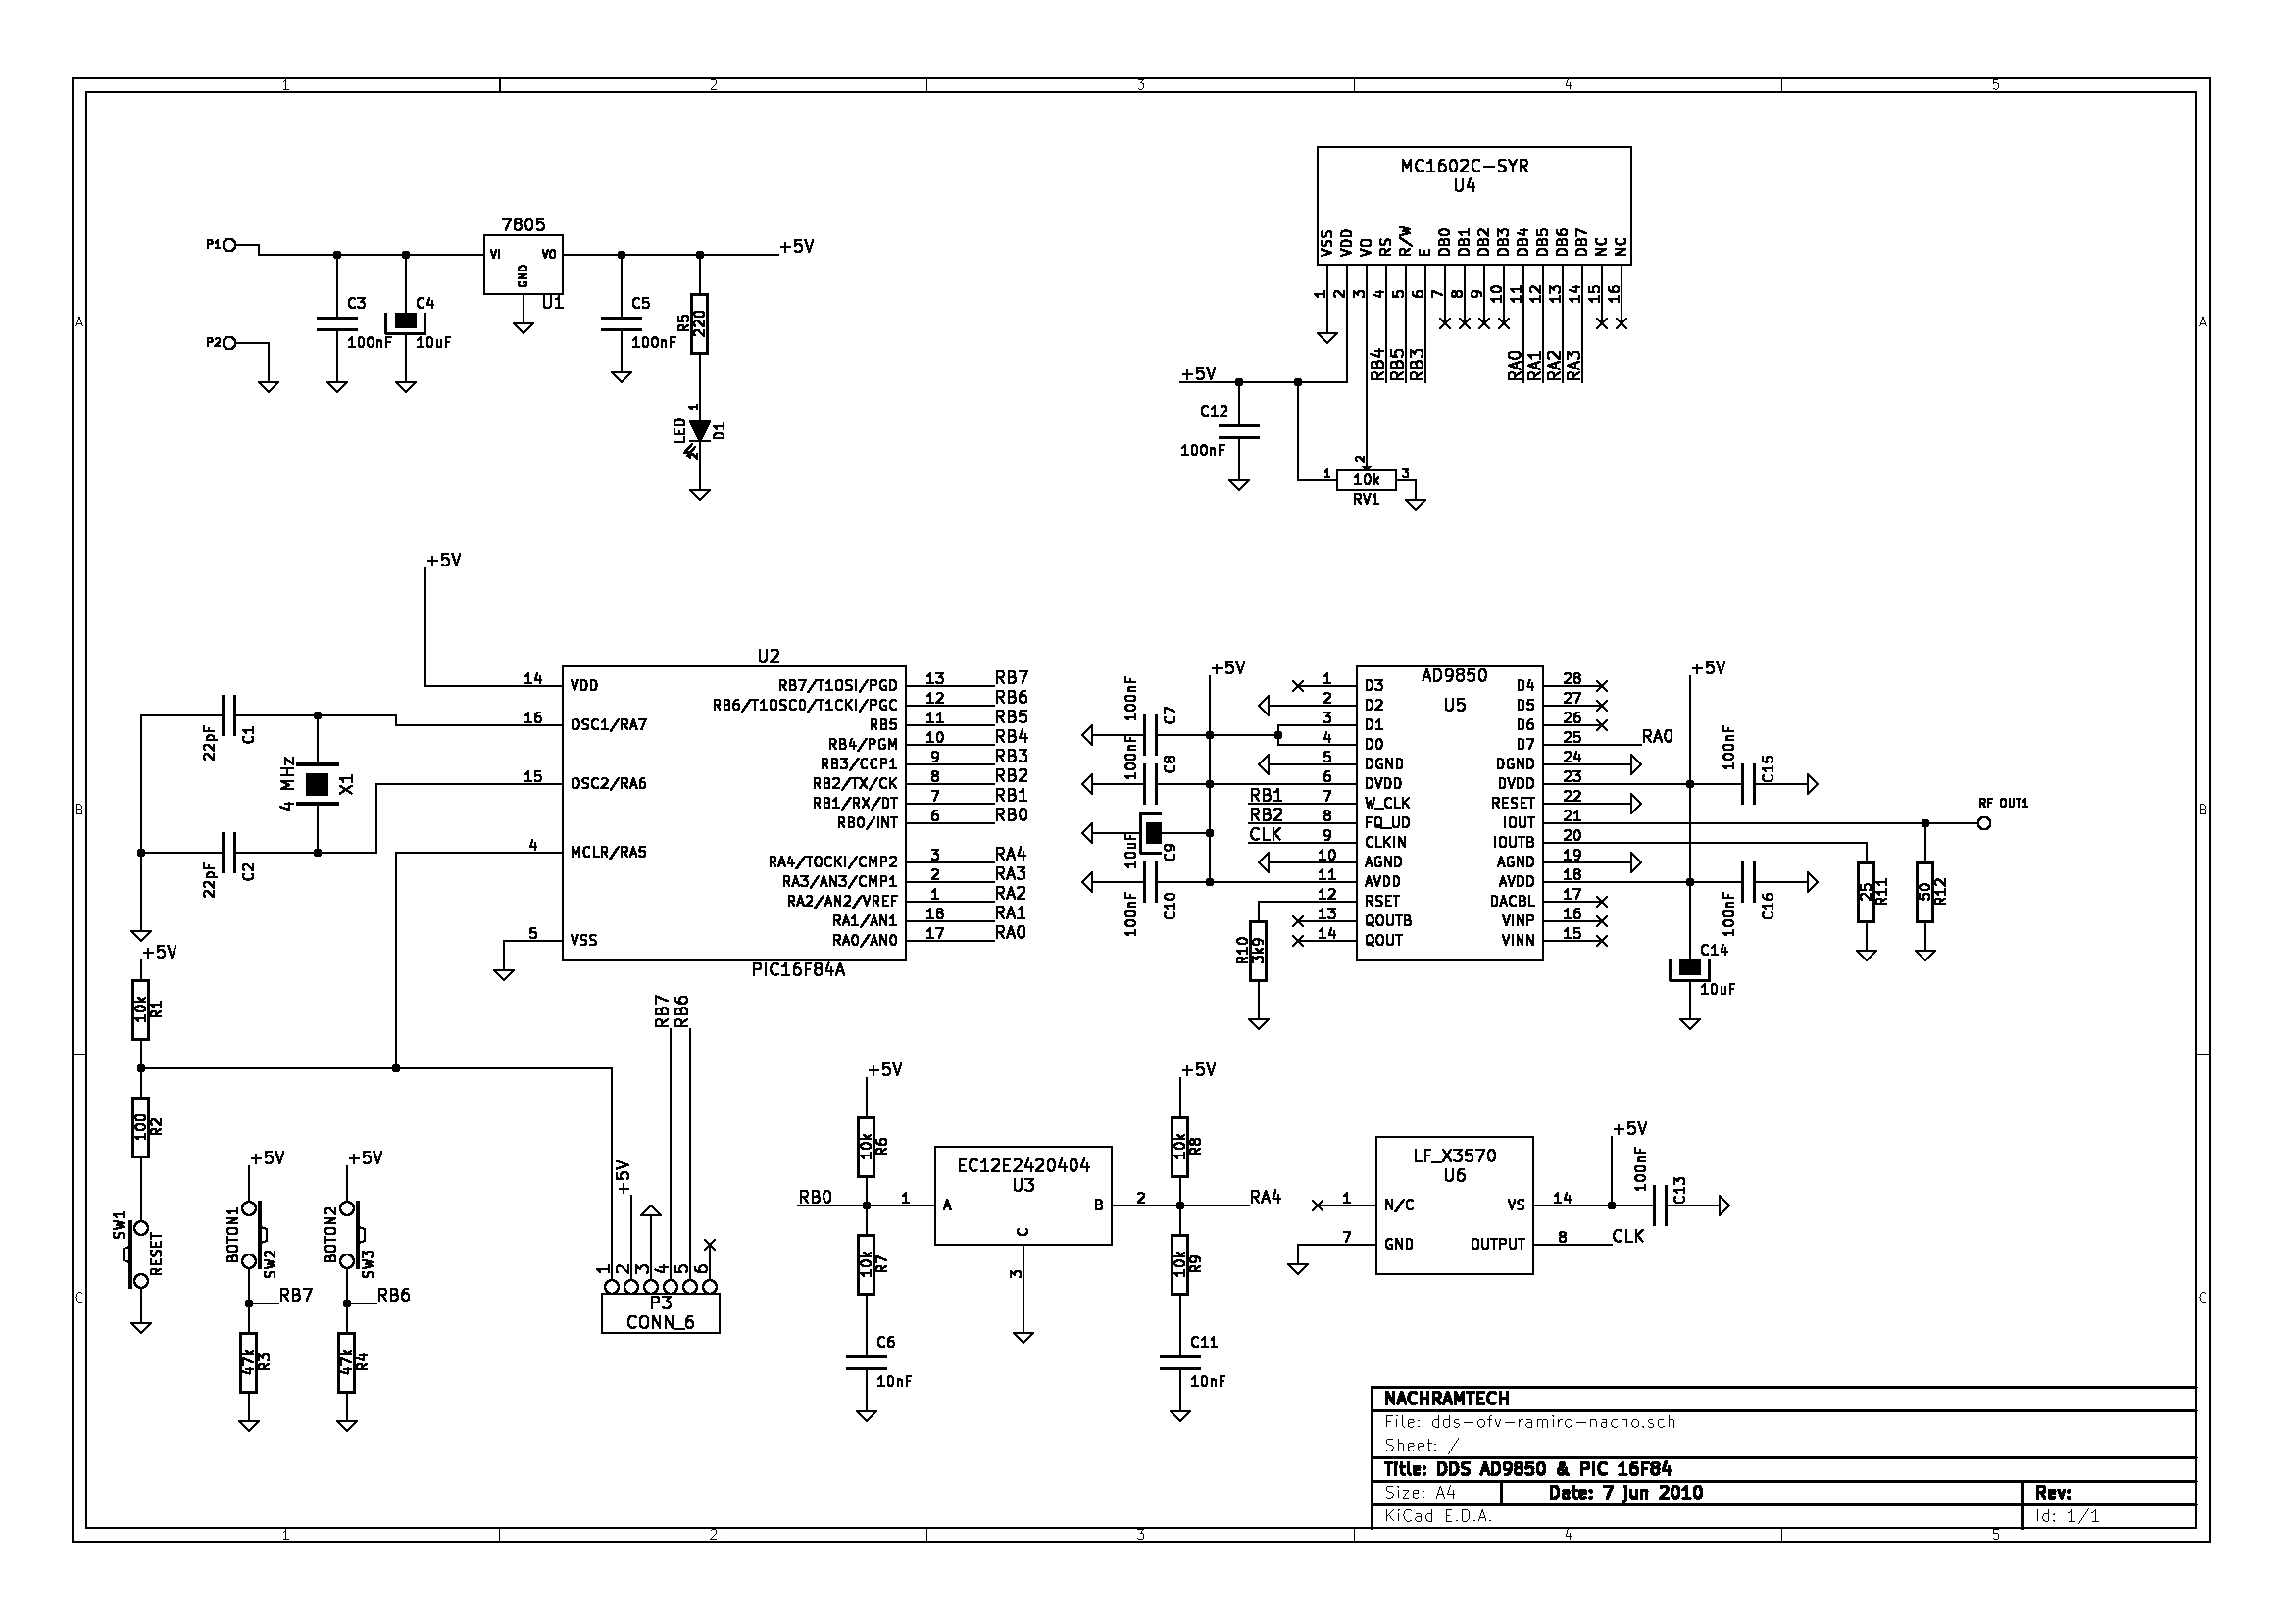 Sdr Hf Receiver Design Low Pass Audio Filter Circuit We Are Using An Old Ad9850 Dds Chip